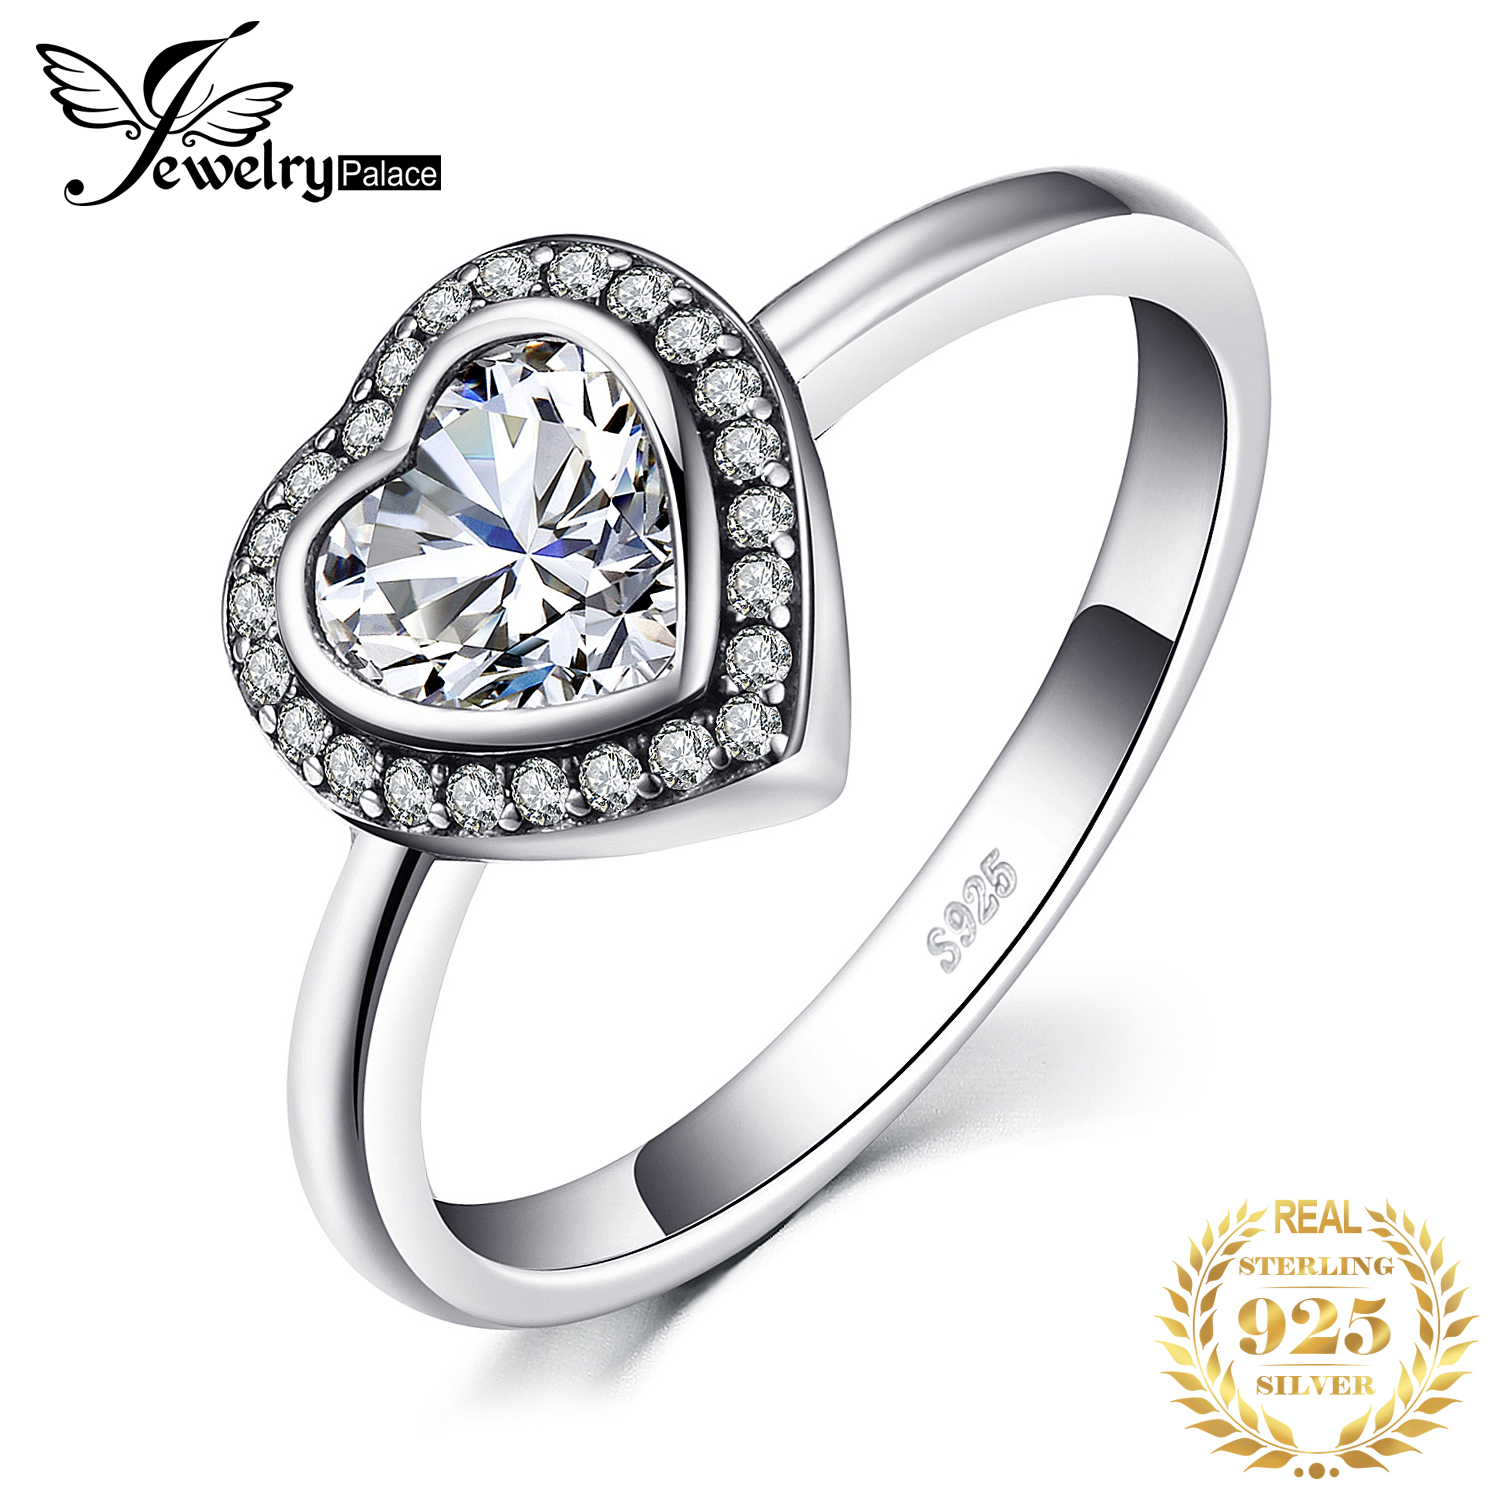 Jewelrypalace 925 Sterling Silver Rings Love Heart Cubic Zirconia Engagement Ring Promise Bridal Jewelry Anniversary Gifts